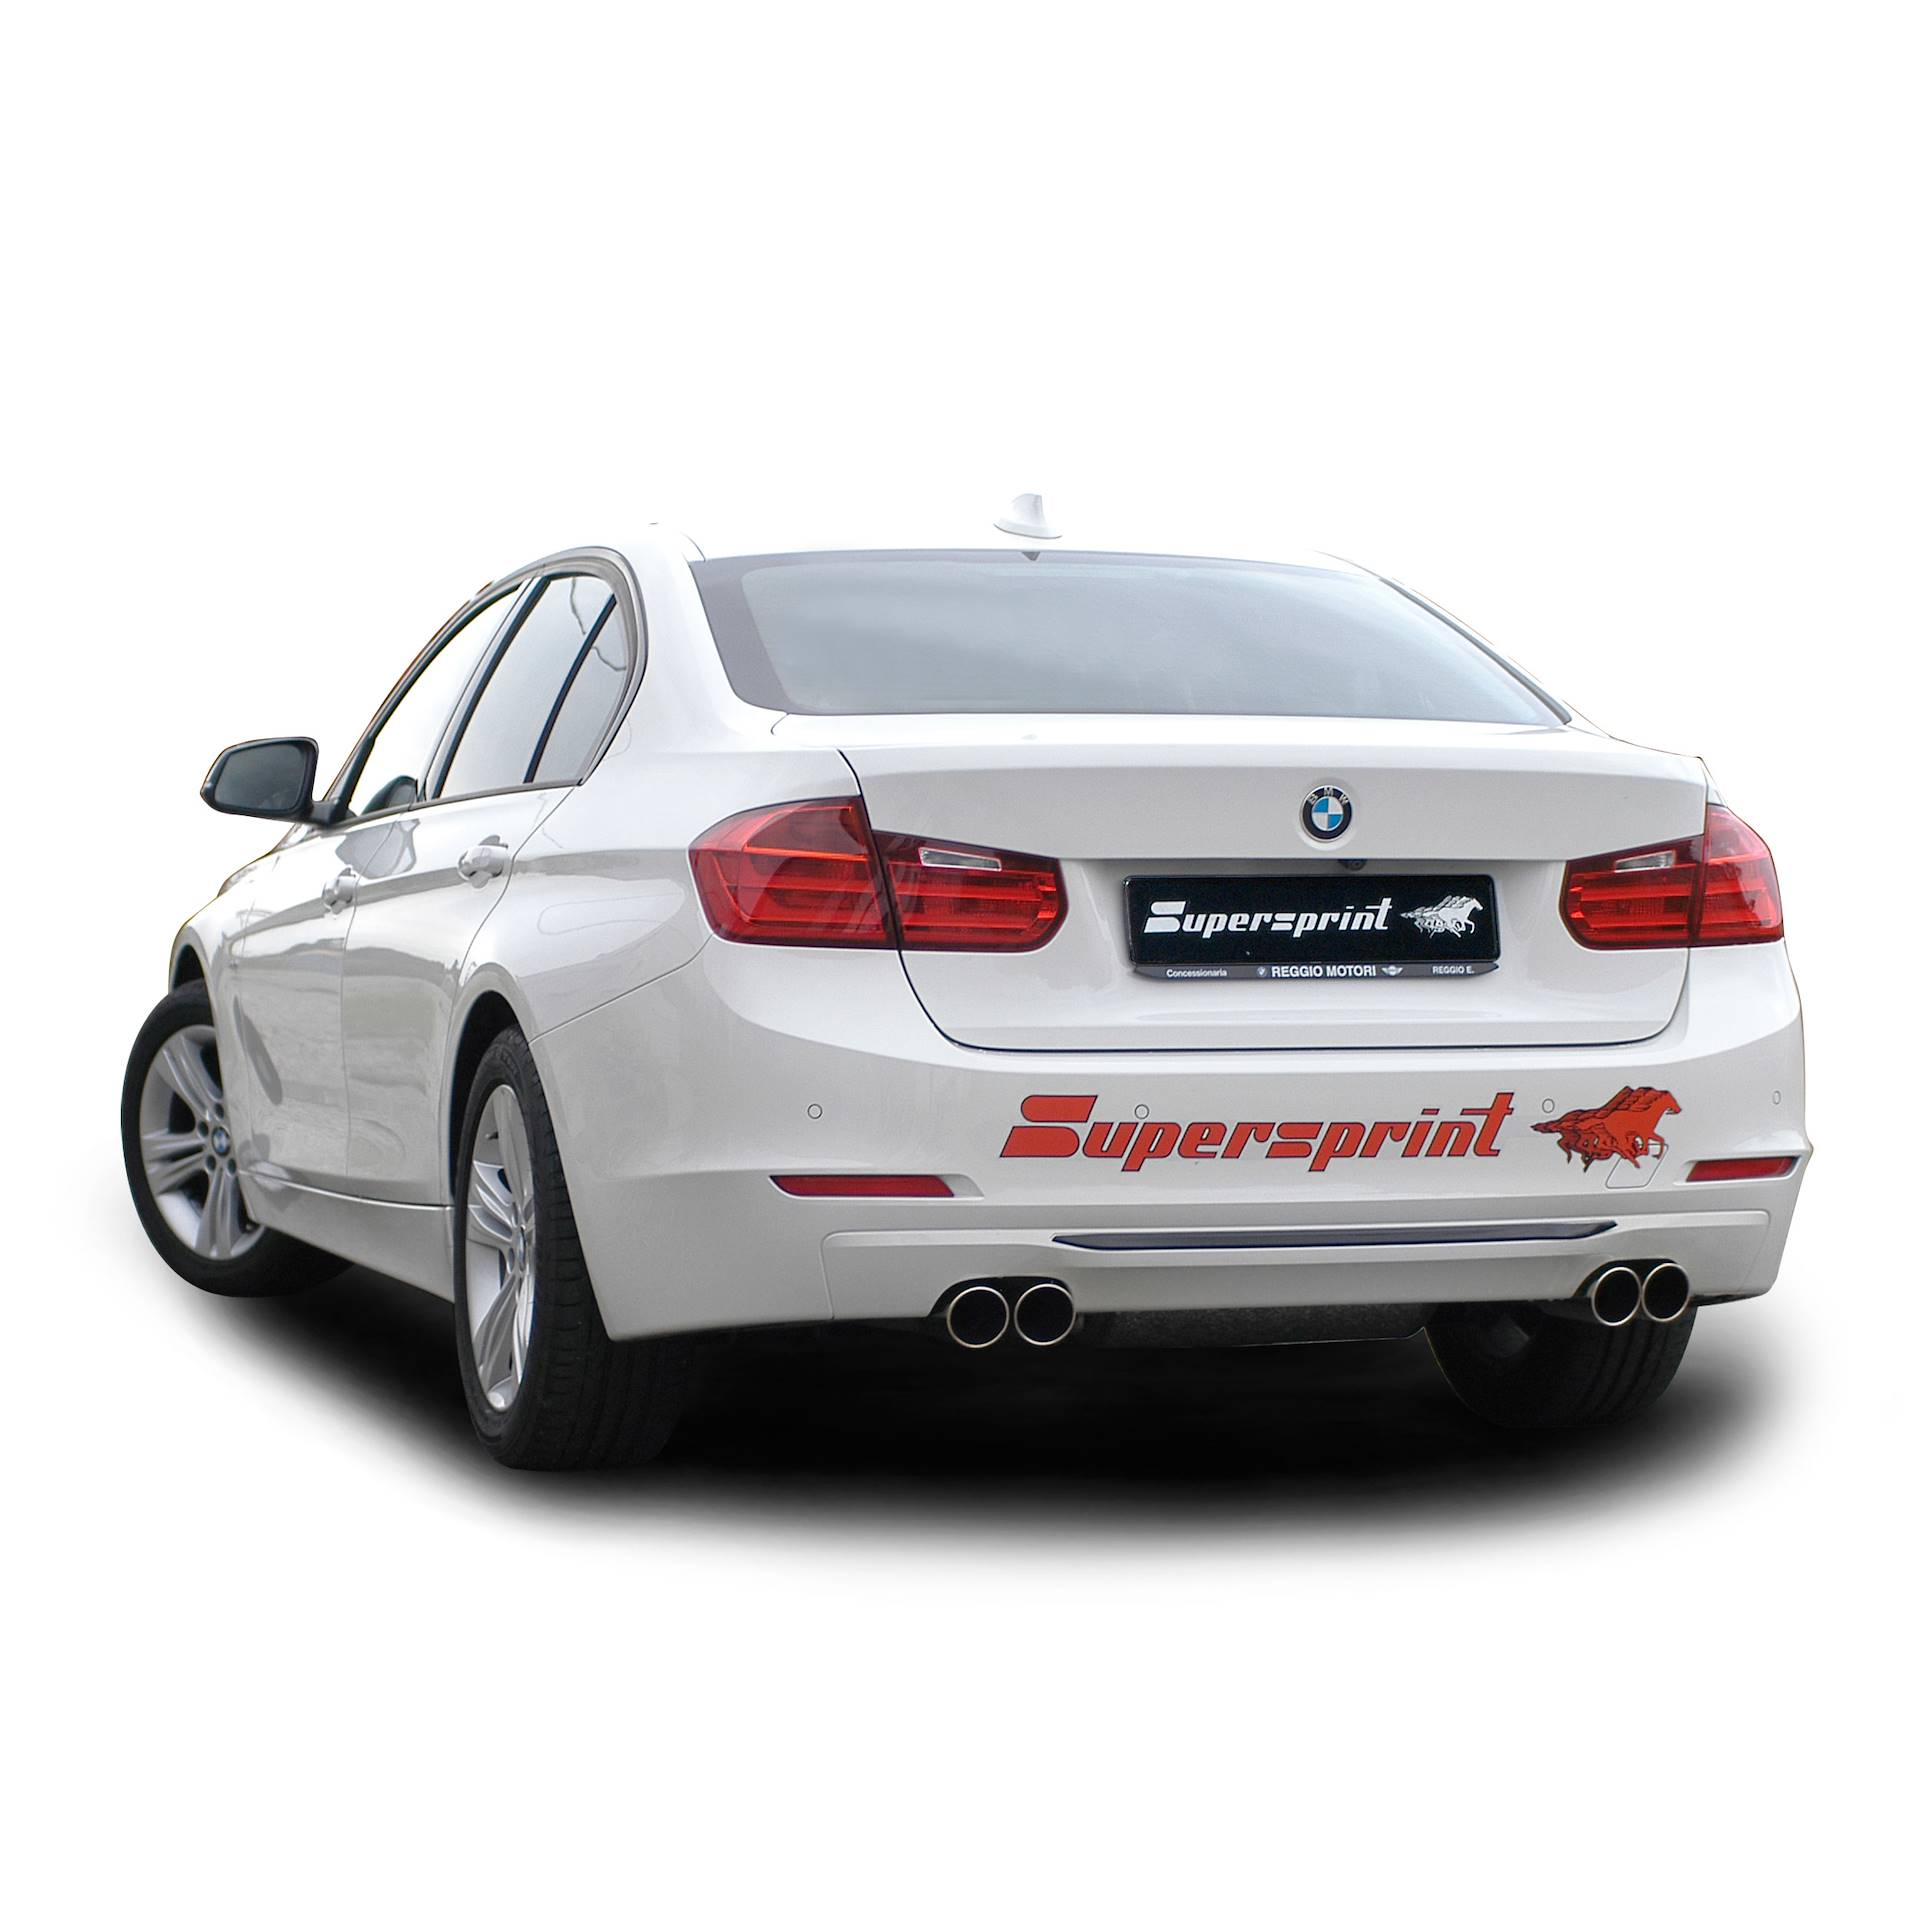 BMW - BMW F30 / F31 (Sedan-Touring) 316i 1.6T (4 cyl./ N13 -136 Hp) 2013 ->